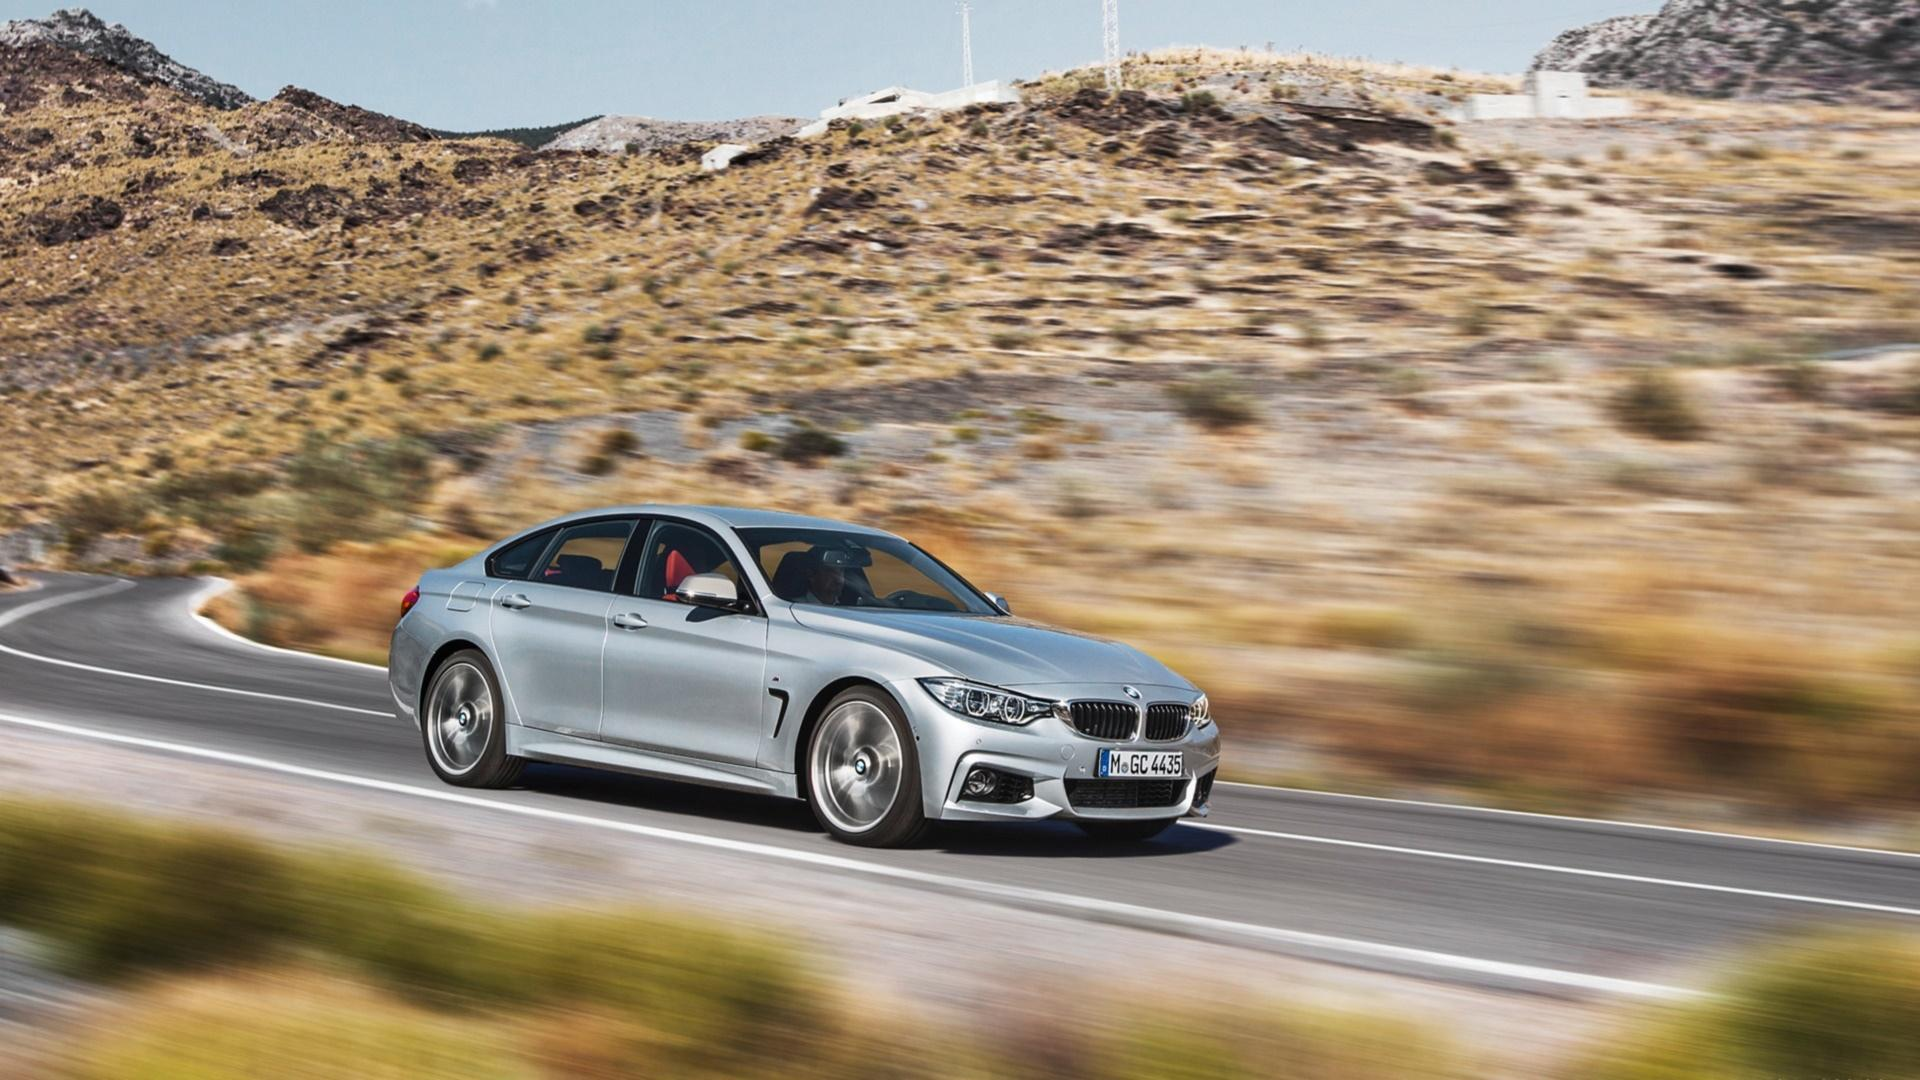 2015 bmw 4 series gran coupe wallpaper hd download. Black Bedroom Furniture Sets. Home Design Ideas